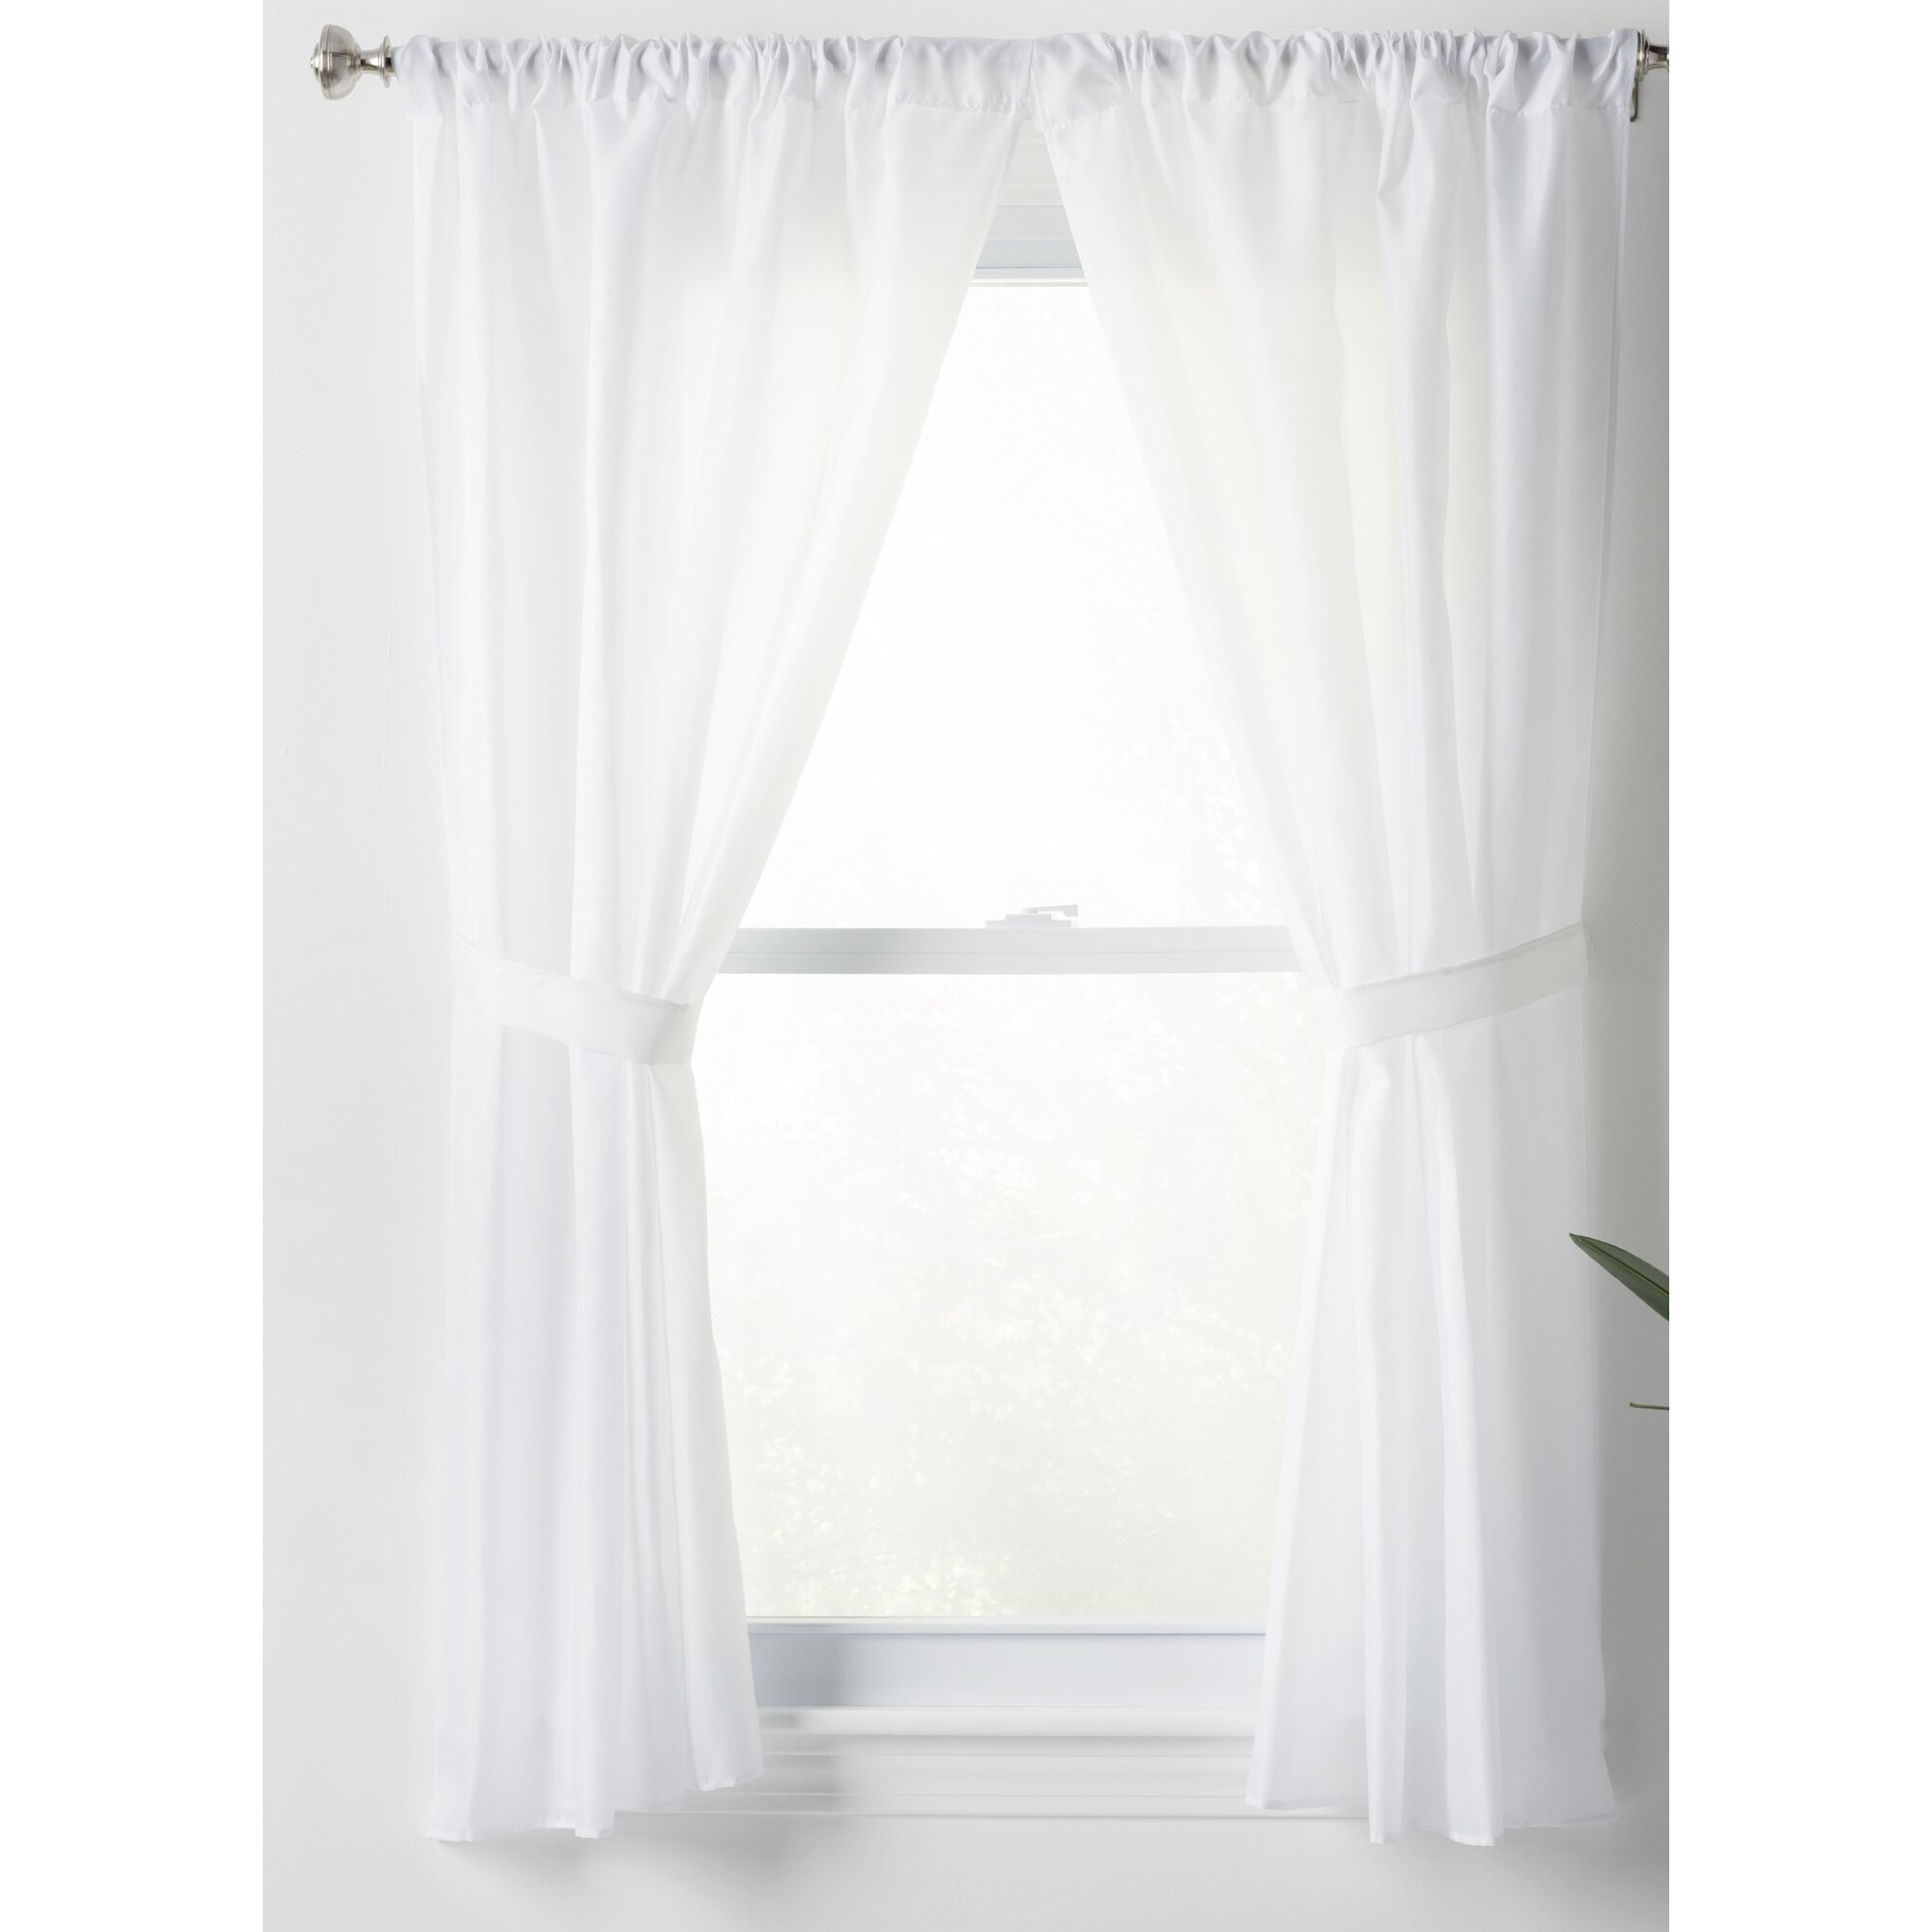 Bathroom sheer curtains